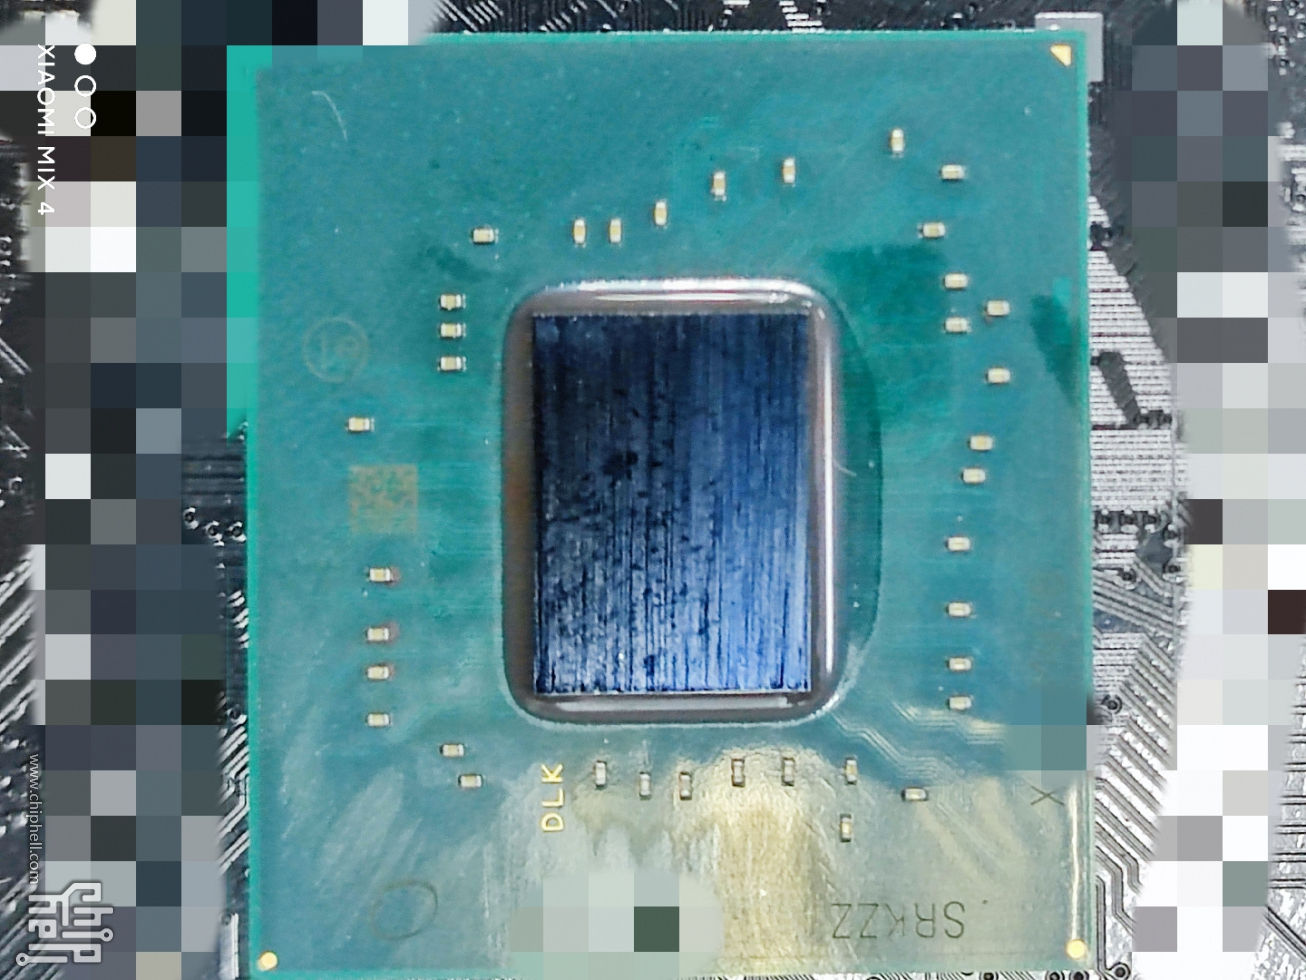 Intel Z690 'Alder Lake' PCH For Next-Gen Enthusiast Motherboards Pictured